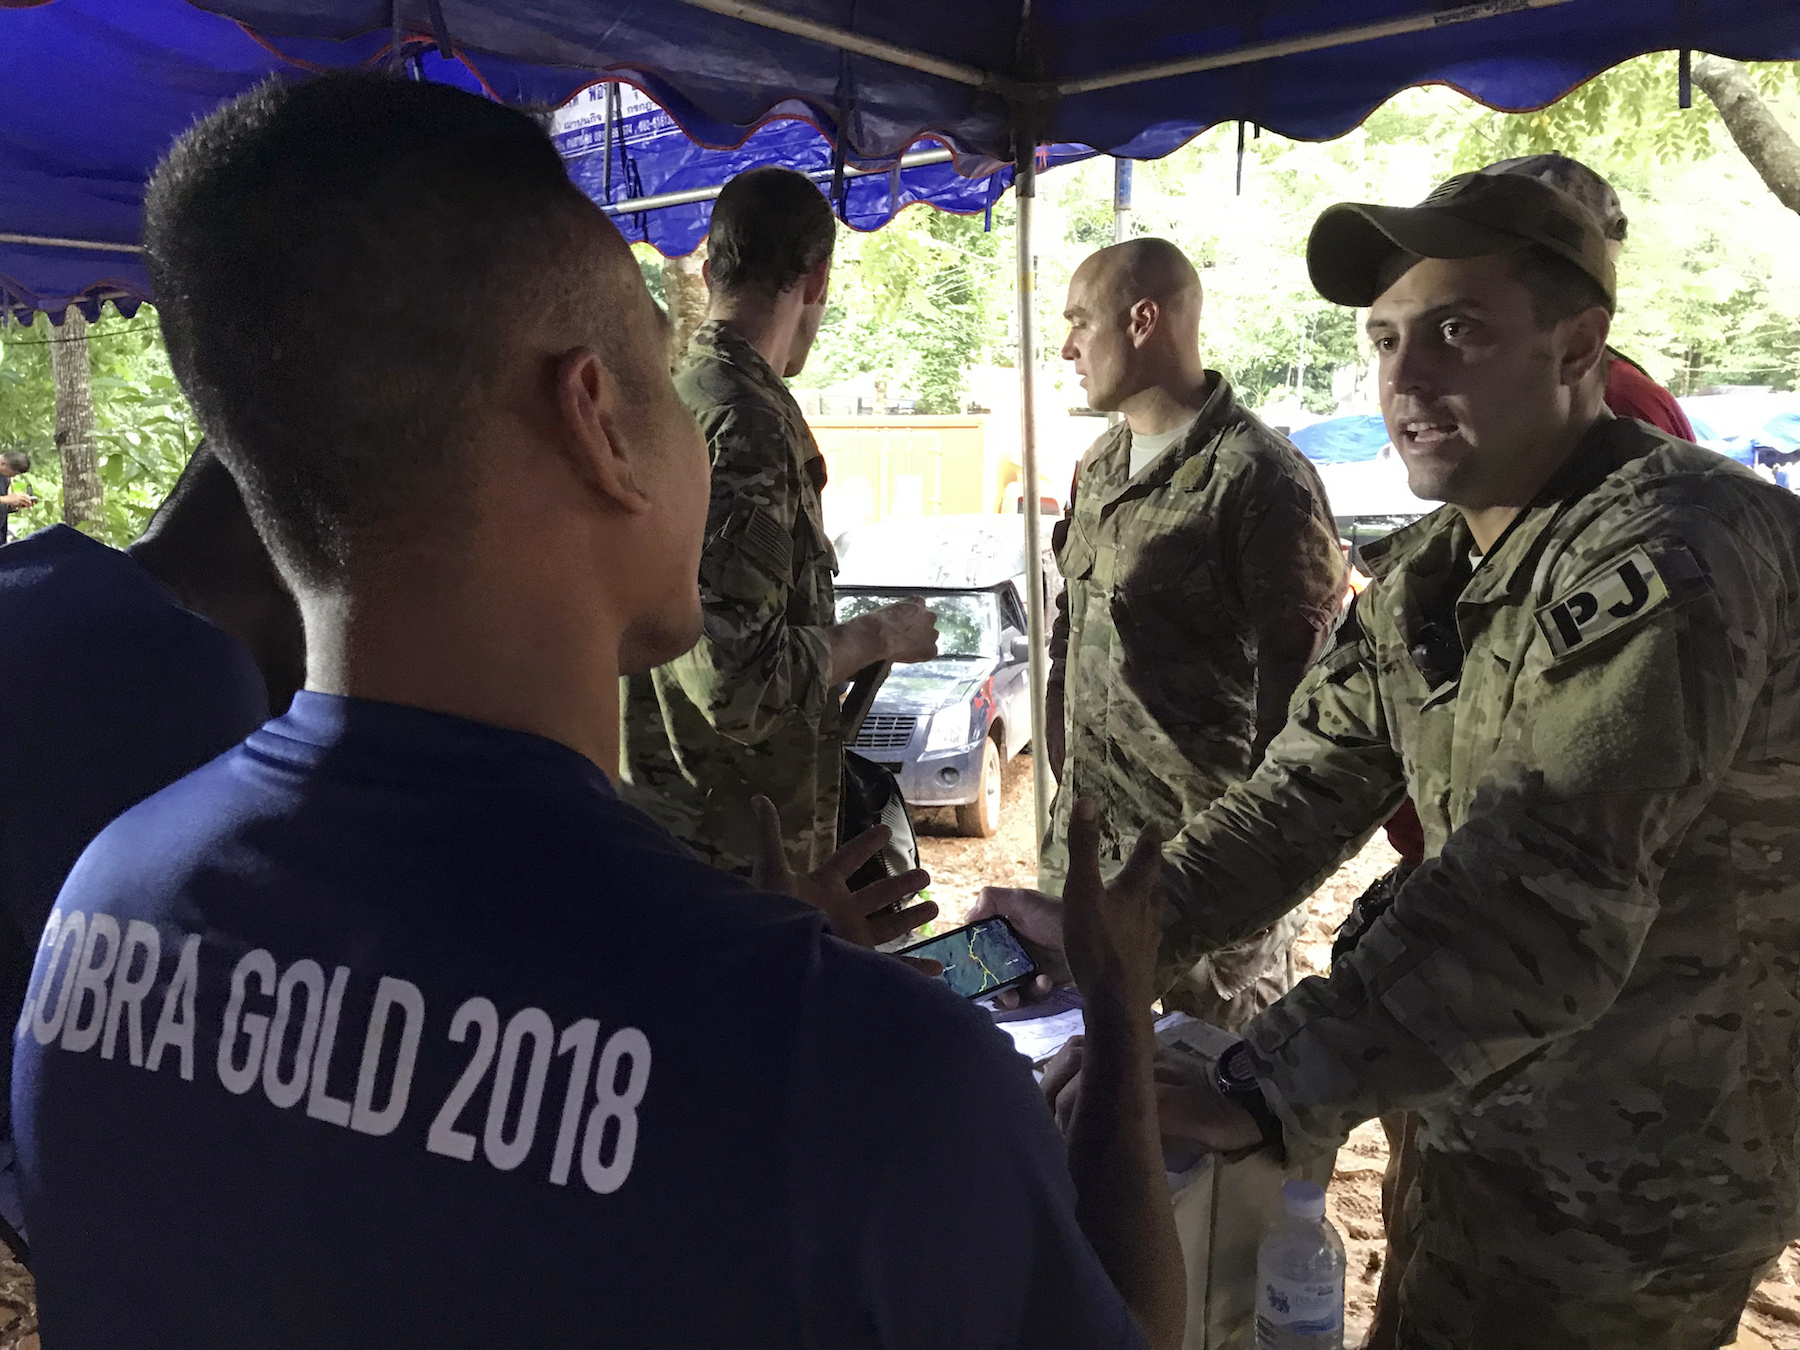 "<div class=""meta image-caption""><div class=""origin-logo origin-image ap""><span>AP</span></div><span class=""caption-text"">A U.S. military rescue team is briefed by the Thai Navy SEALs at the staging area outside the Tham Luang Nang Non cave in Mae Sai, Chiang Rai province, northern Thailand . (AP Photo/Tassanee Vejpongsa)</span></div>"